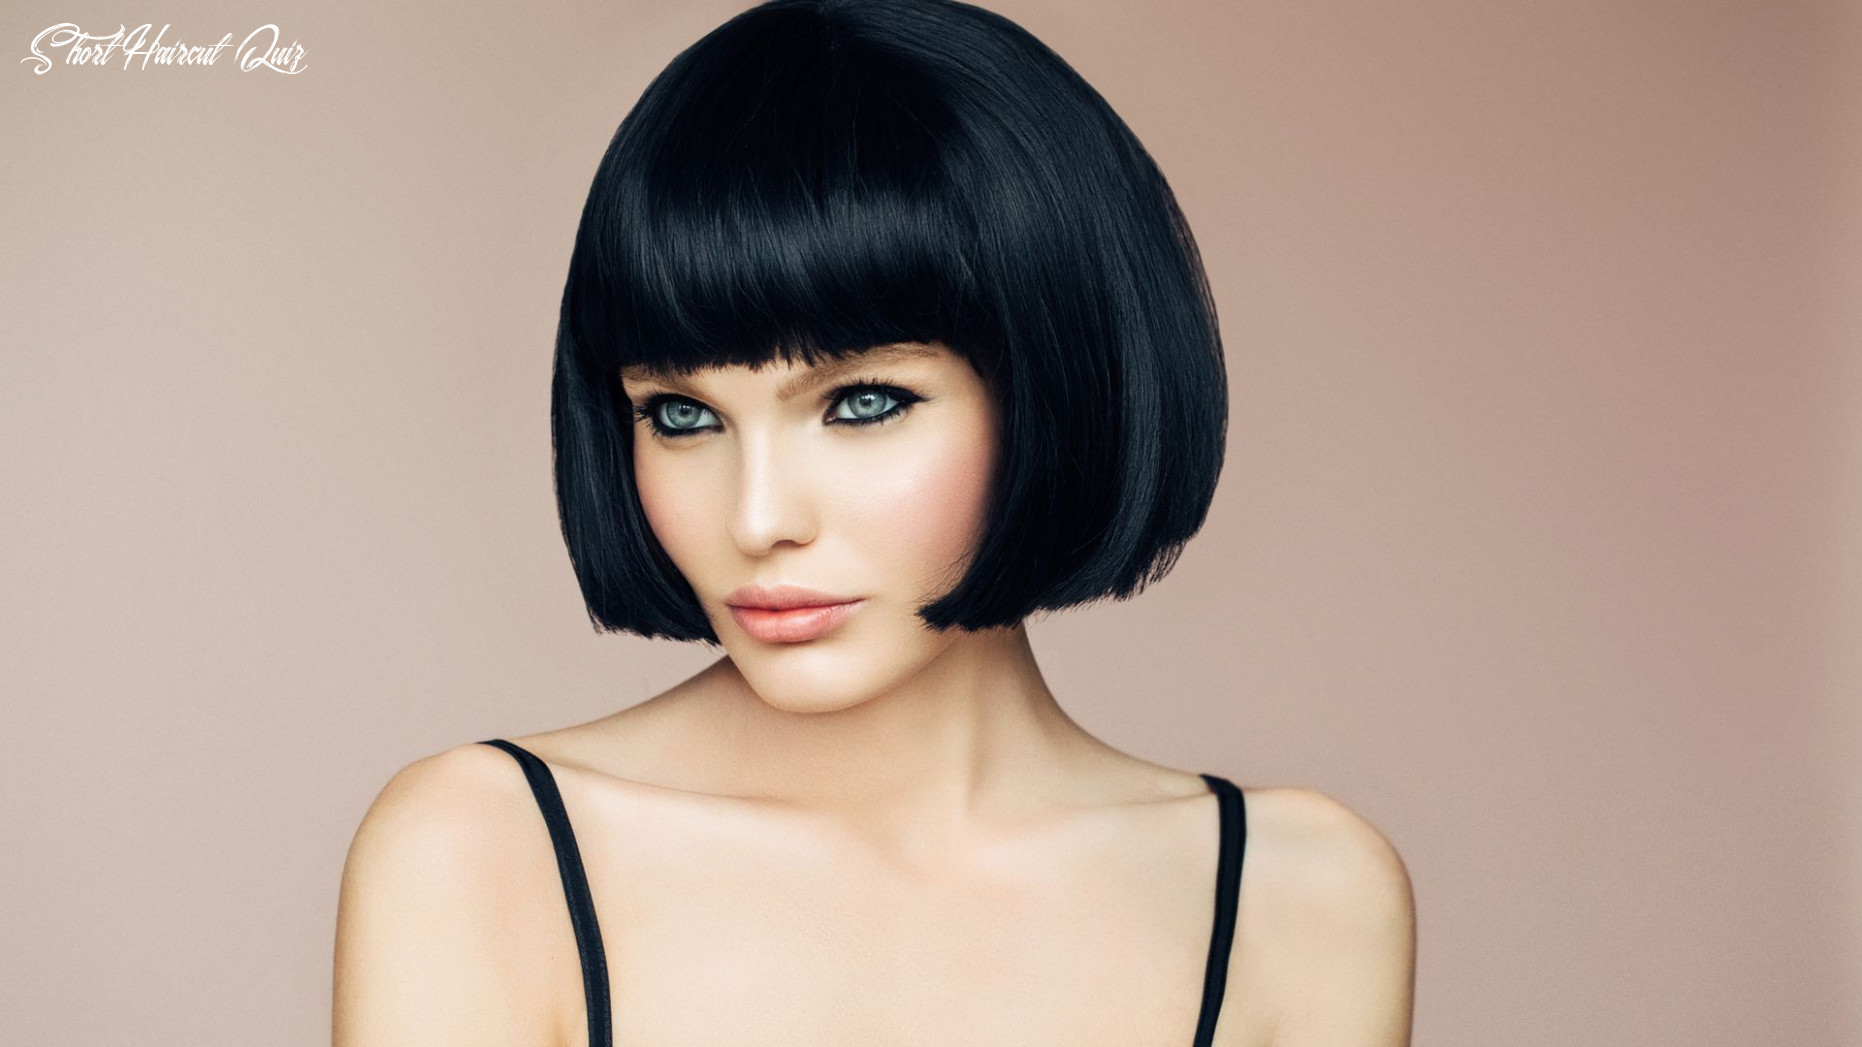 What is your ideal short haircut? | howstuffworks short haircut quiz